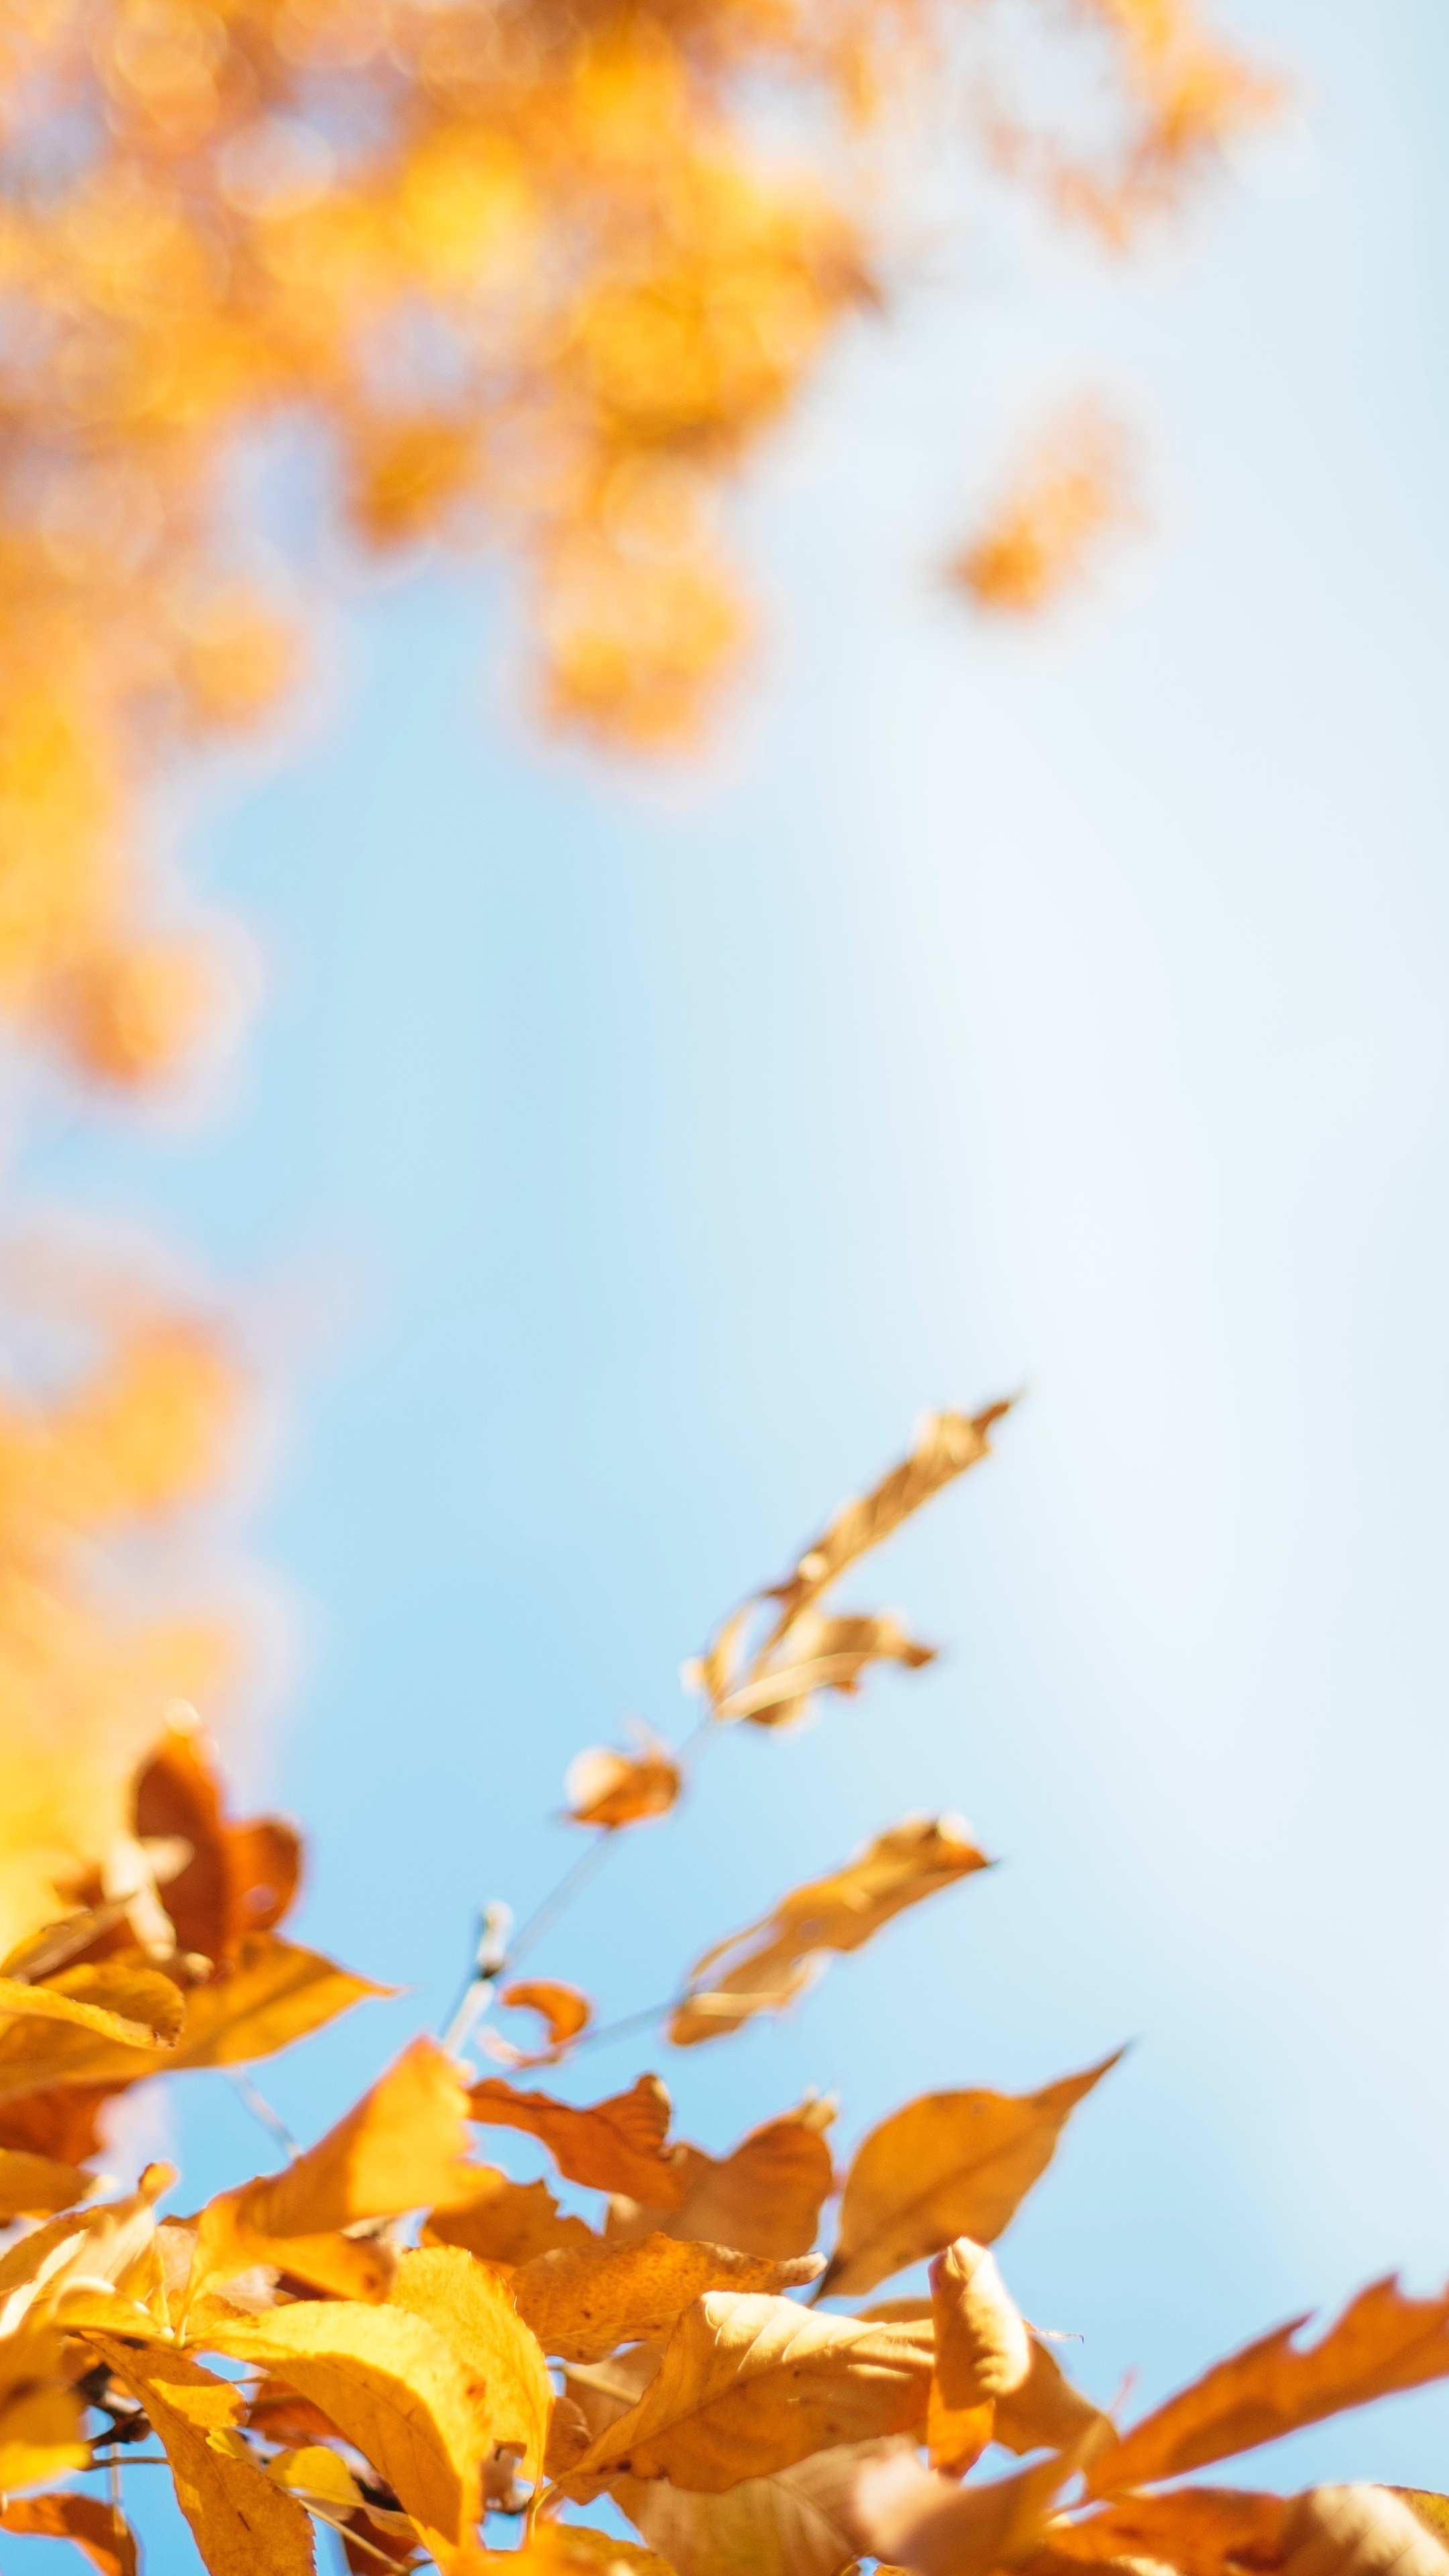 autumn-leave-r8.jpg